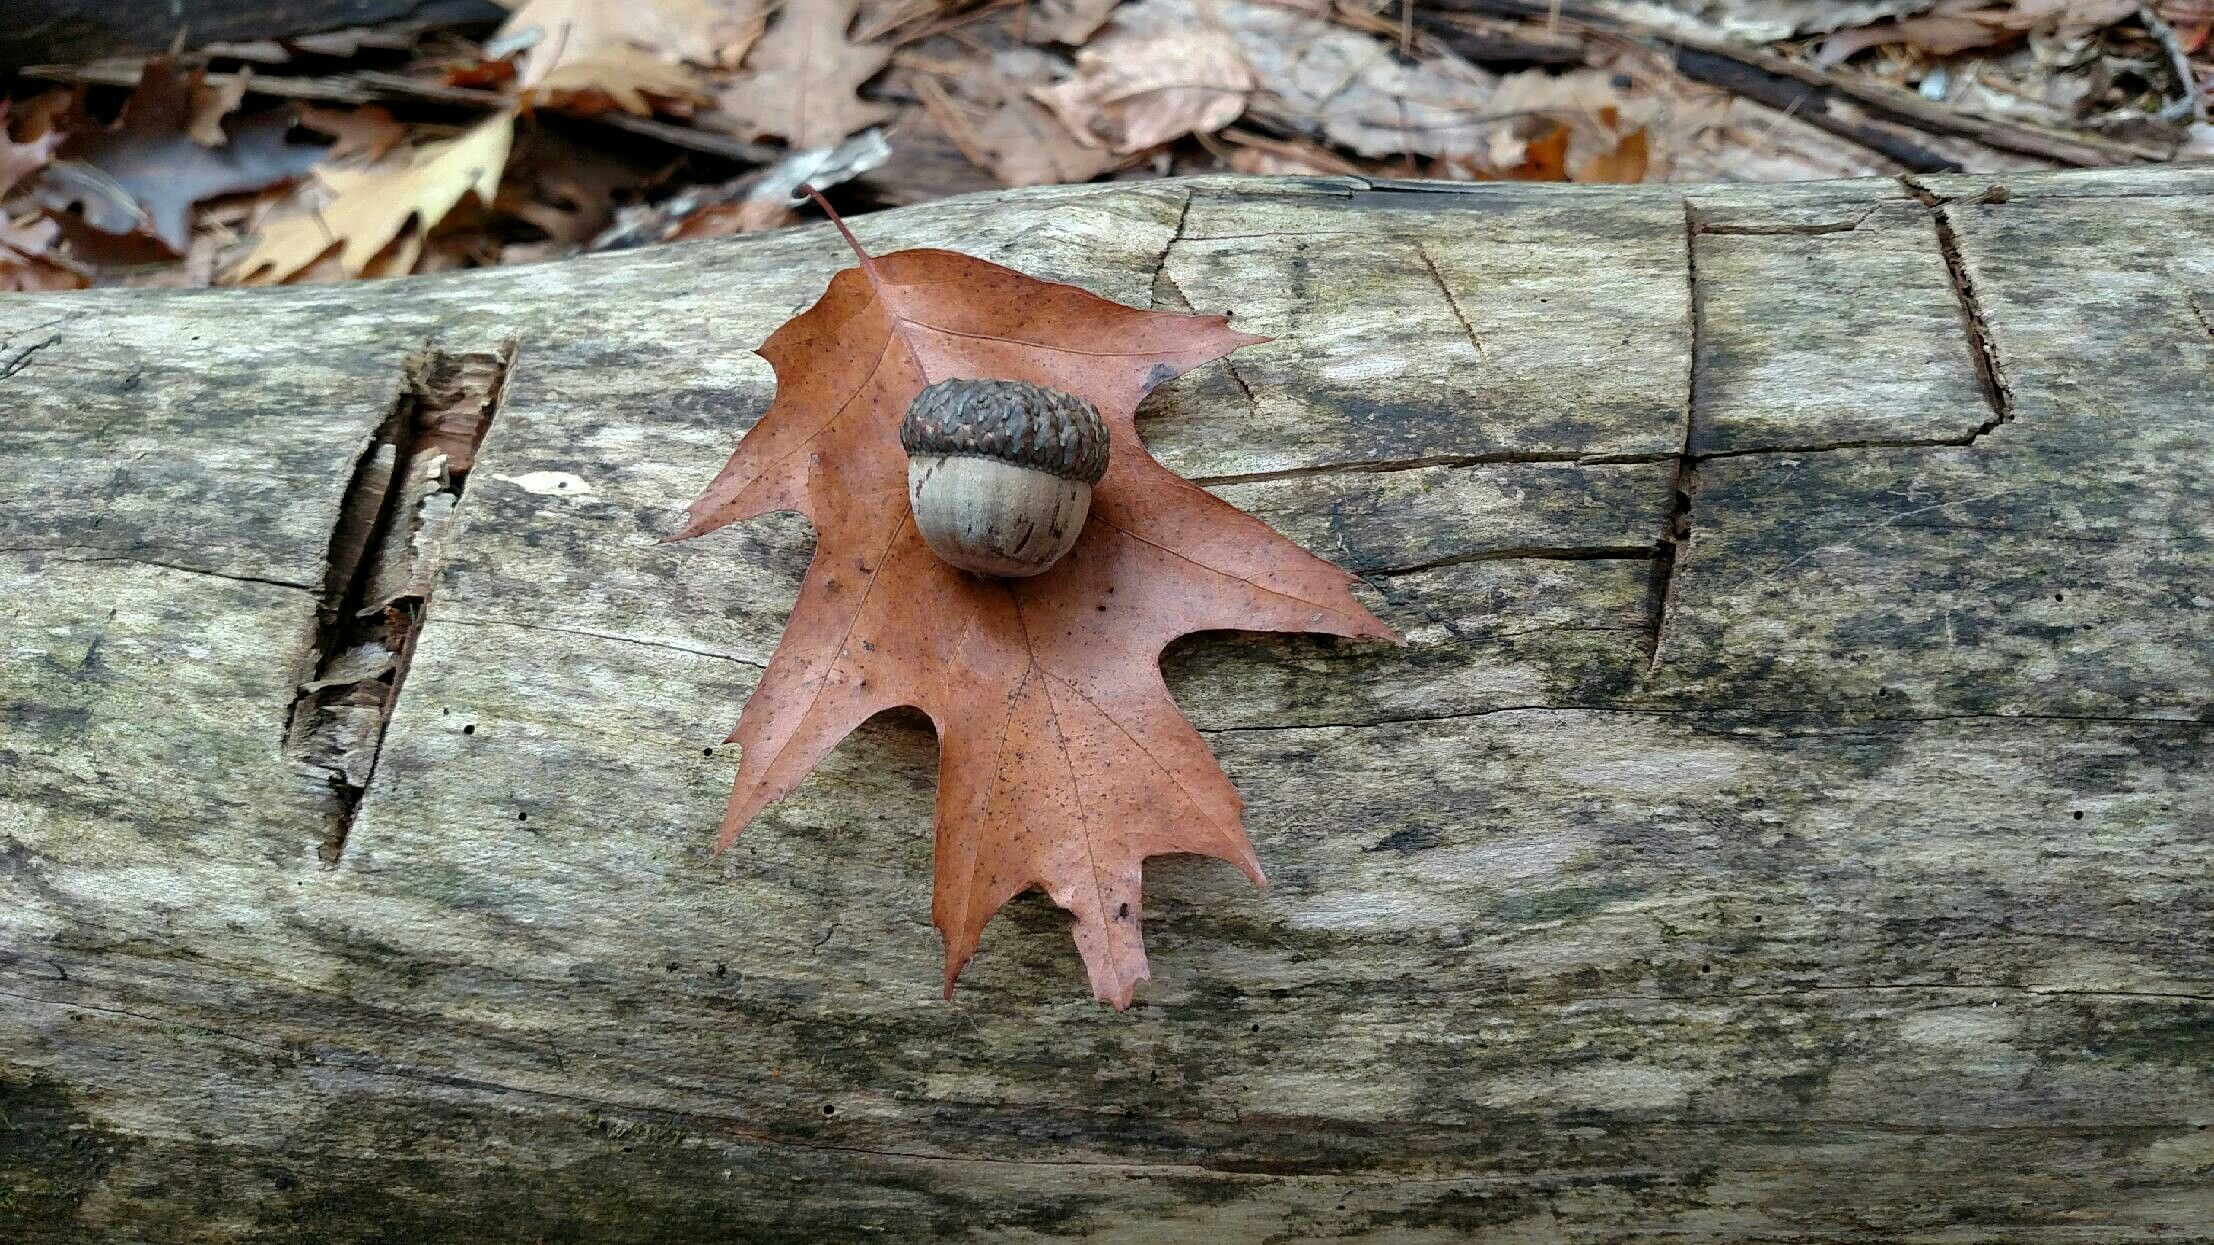 Pin by yvonne emmett sones on acorns and the mighty oak pinterest find this pin and more on acorns and the mighty oak by yvo54 buycottarizona Image collections